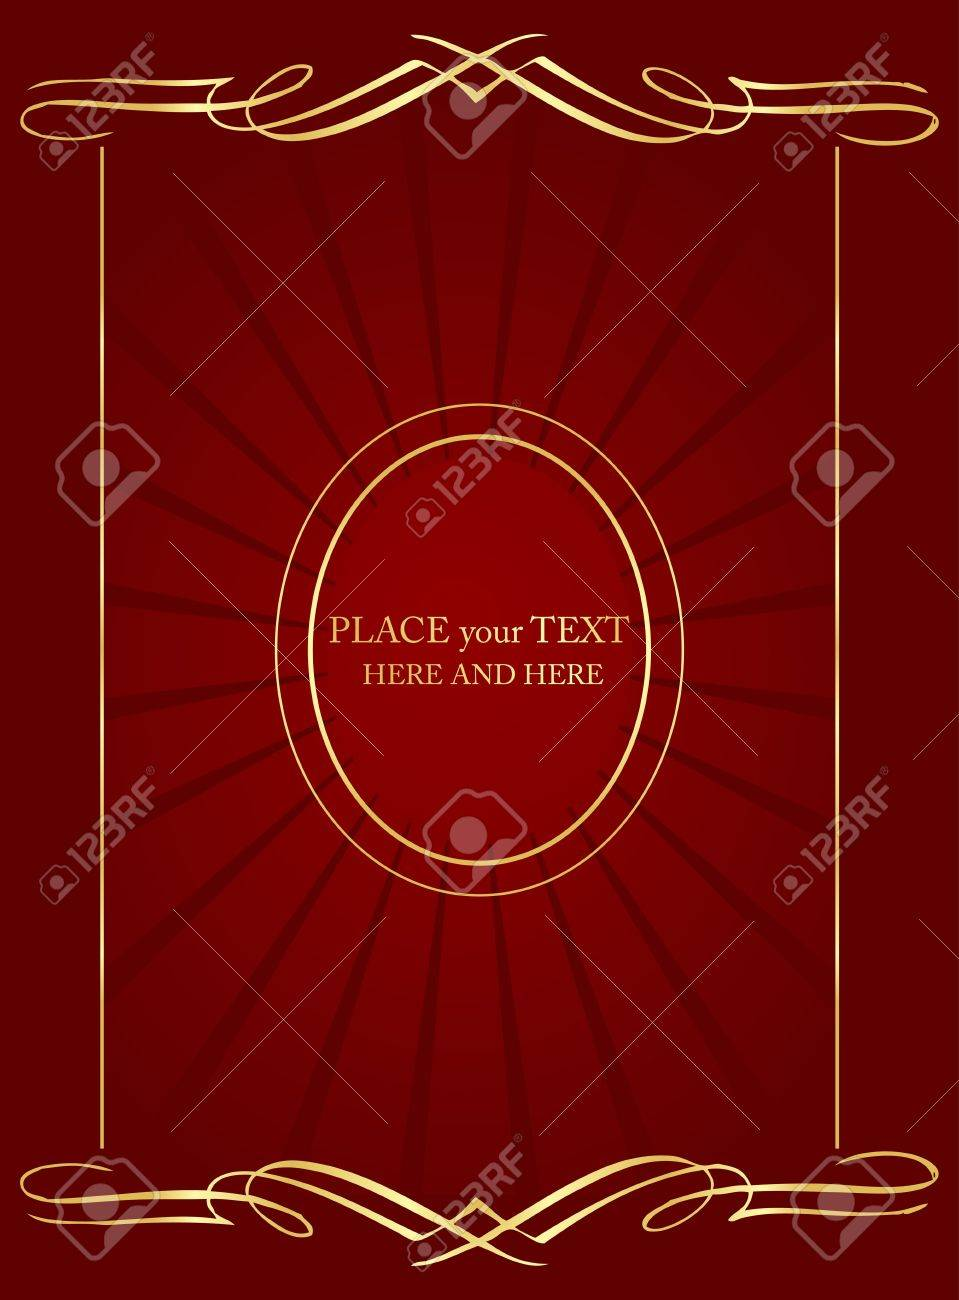 Vintage background vector for book cover or card Stock Vector - 10362278